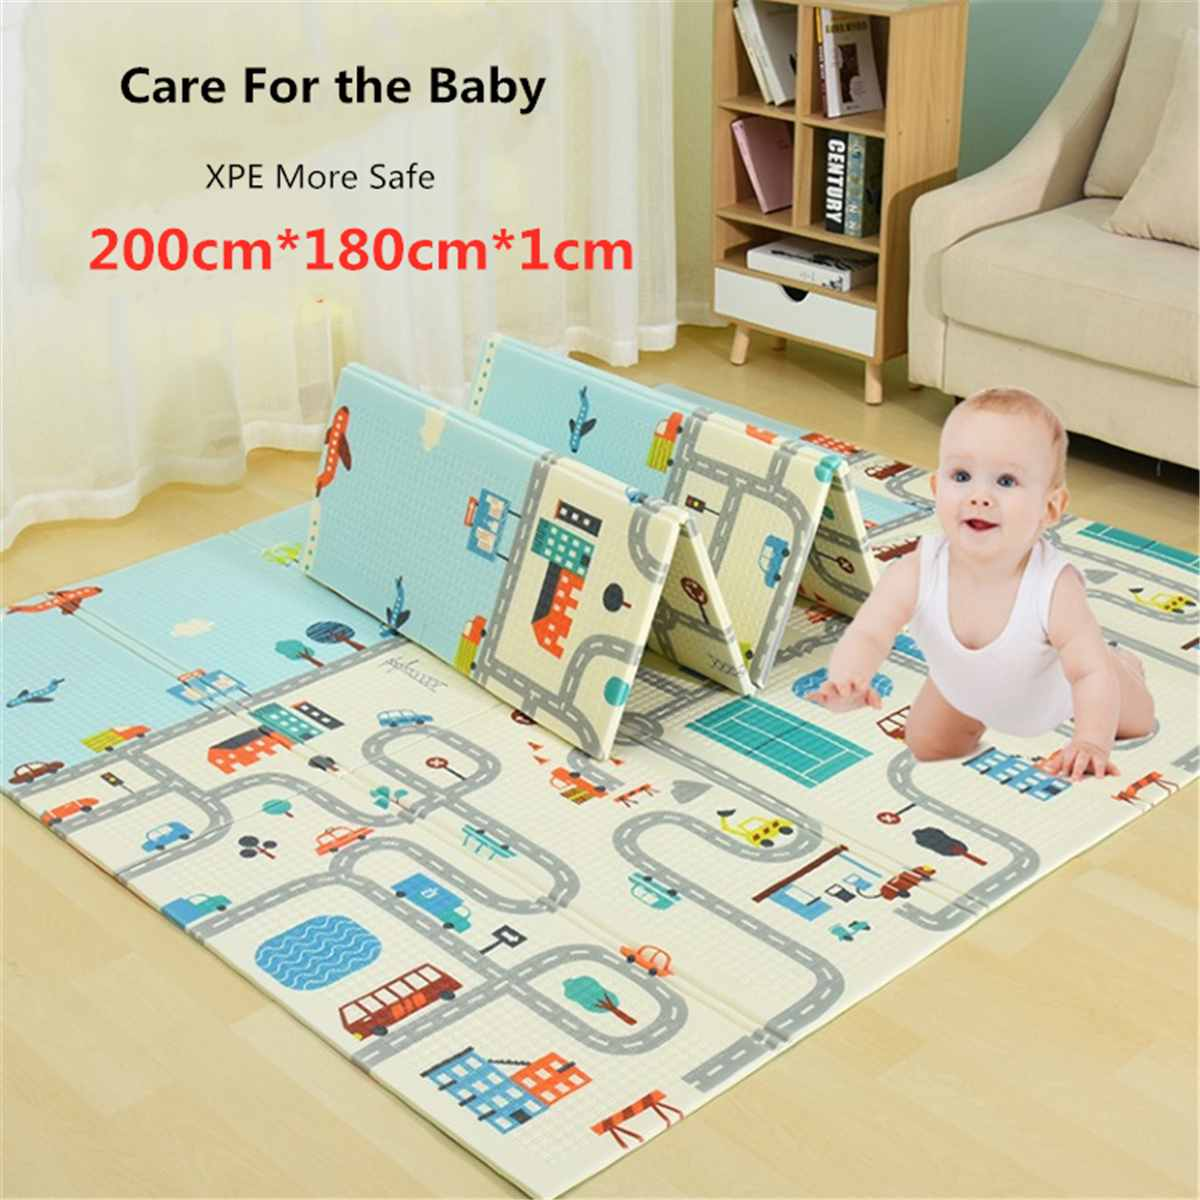 200x180x1cm Infant Baby Play Mat XPE Puzzle Children Mat Thicken Tapete Infantil Baby Crawling Pad Toddler Folding Mat Nursing